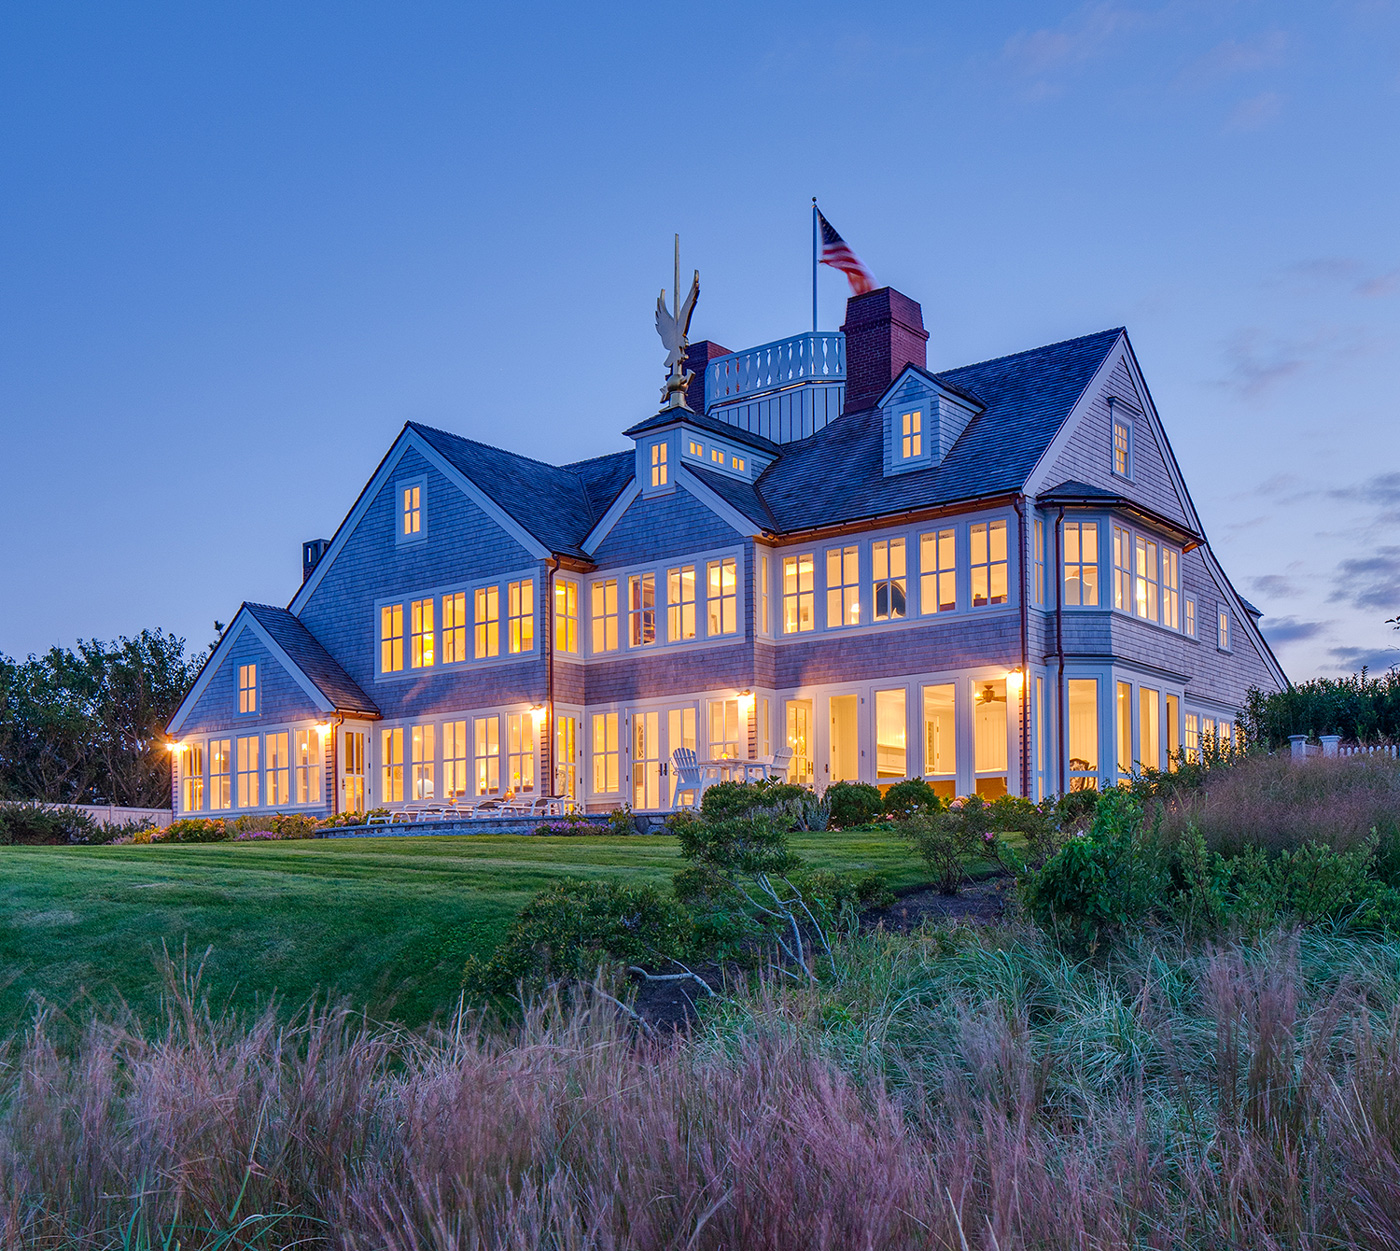 Dusk shot of Cape Cod waterfront home